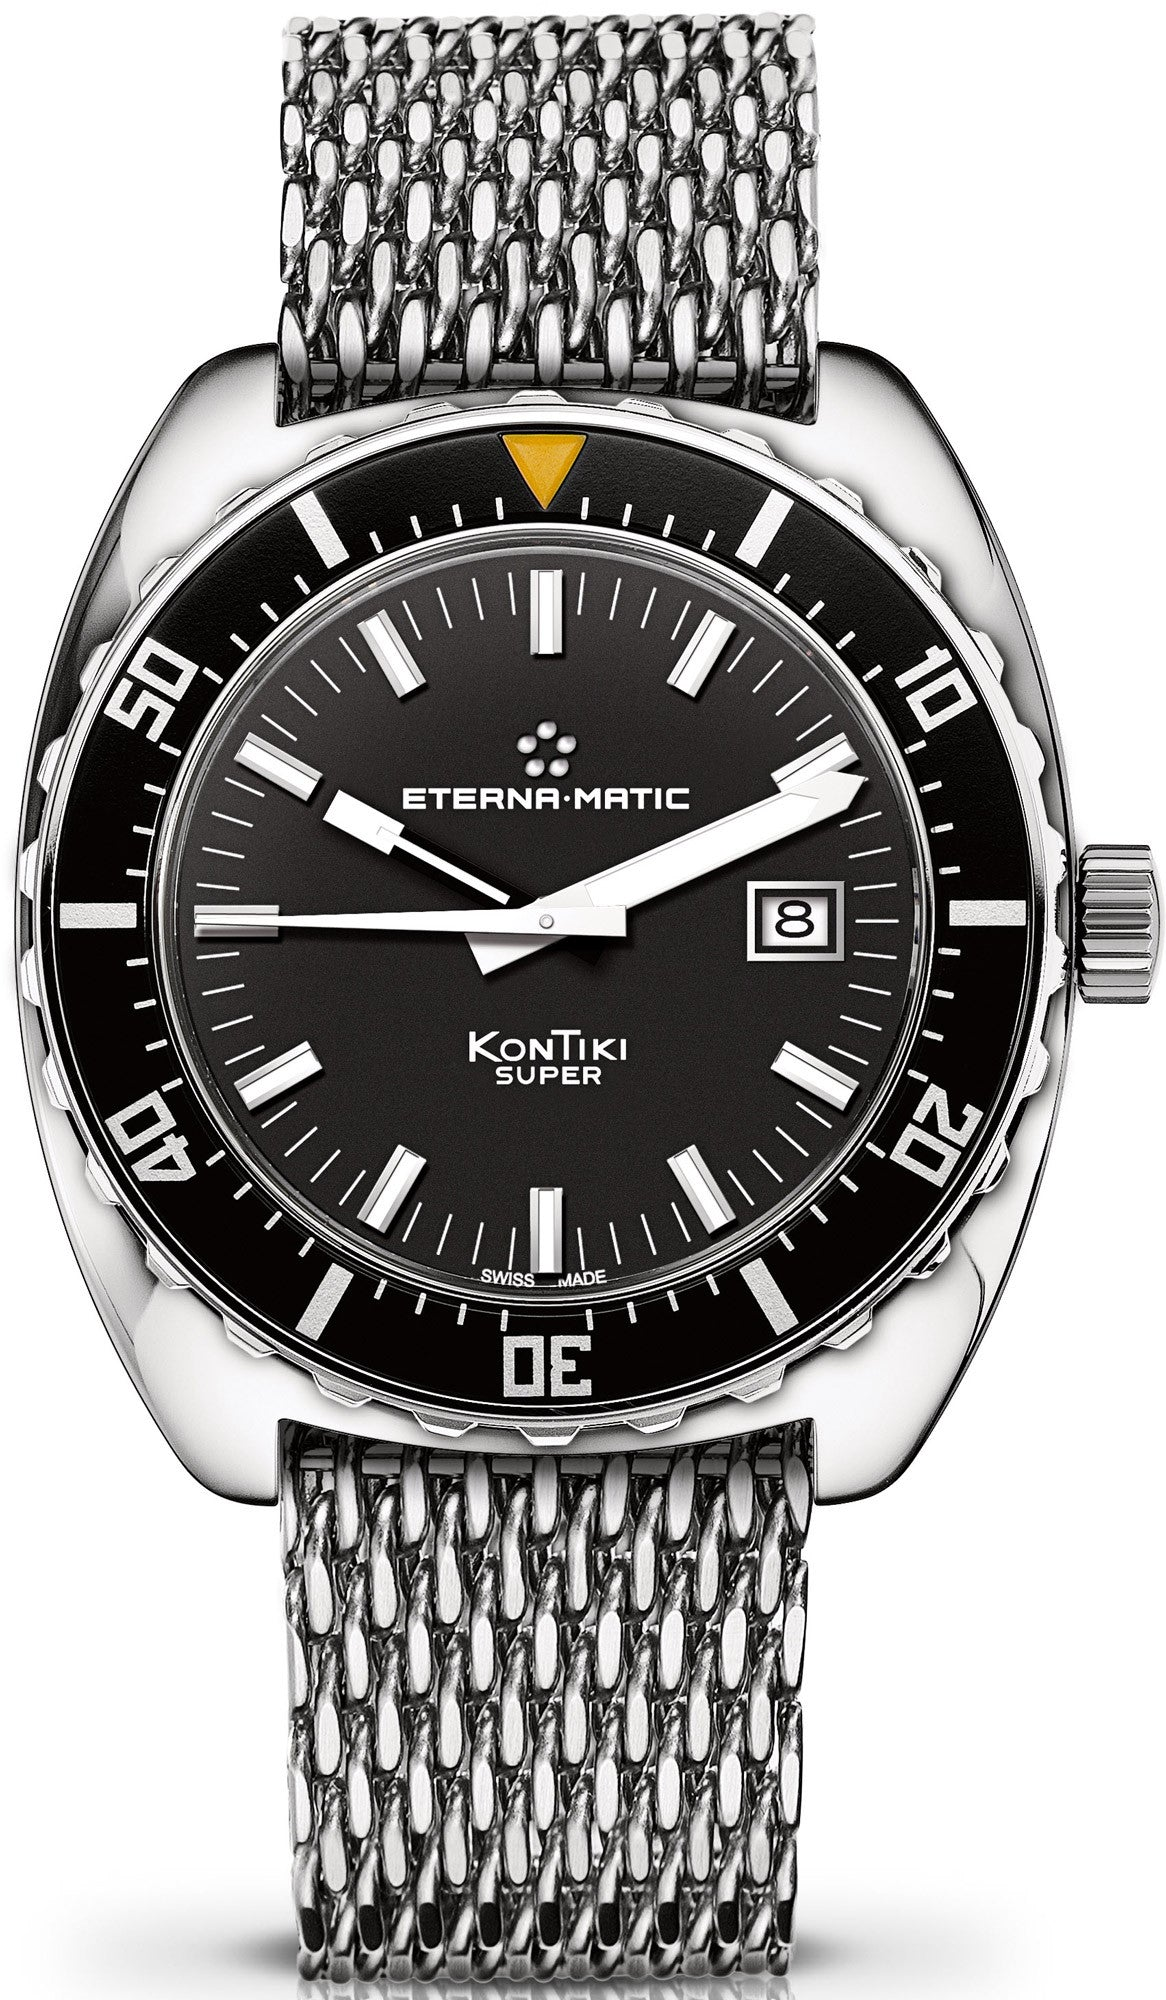 Eterna Watch Super KonTiki 1973 Limited Edition